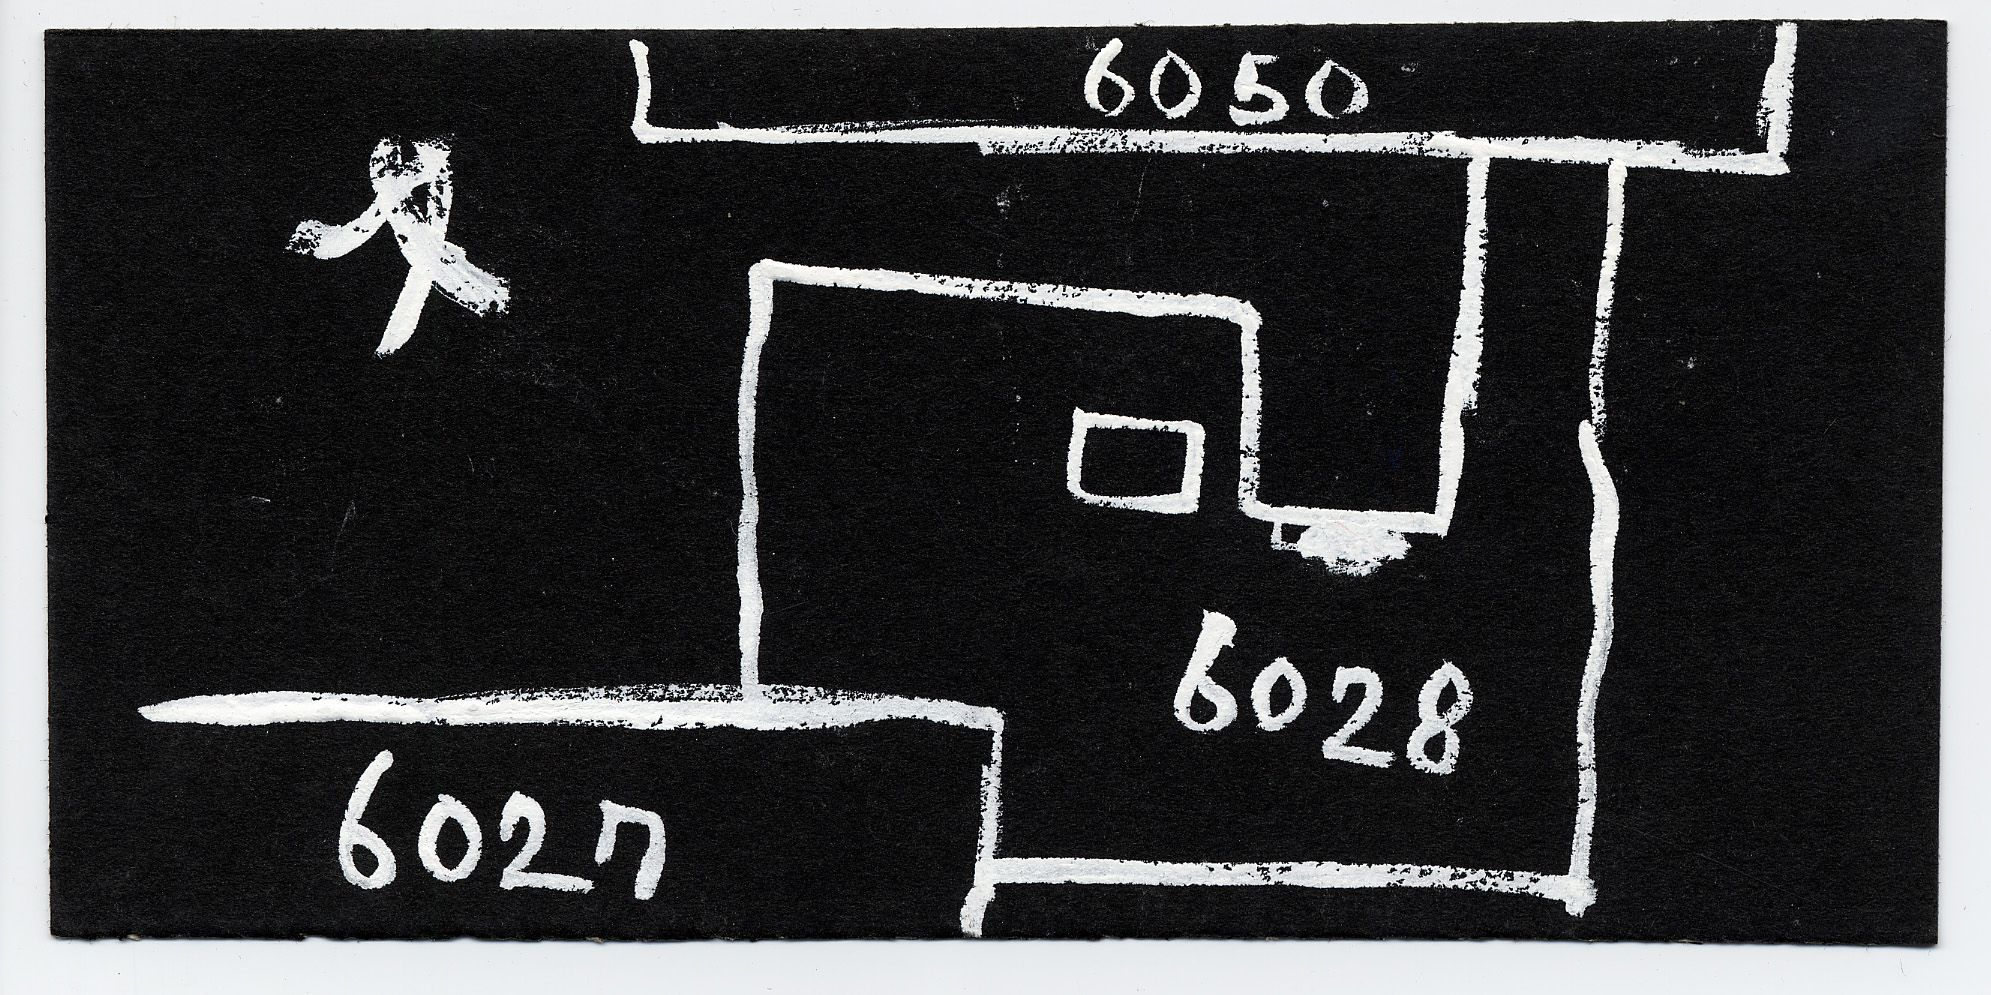 Maps and plans: Sketch plan of G 6027, G 6028, G 6050